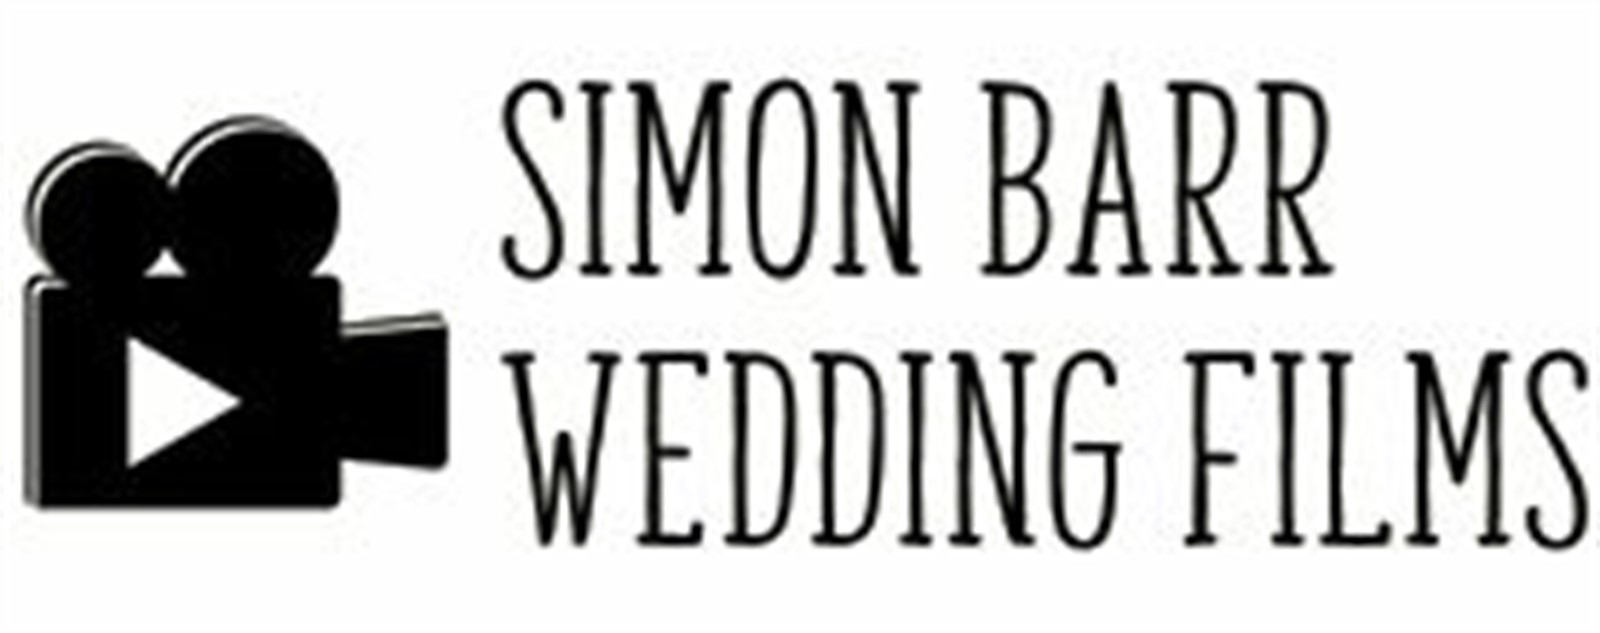 Simon Barr Wedding Films (@weddingfilms) Cover Image